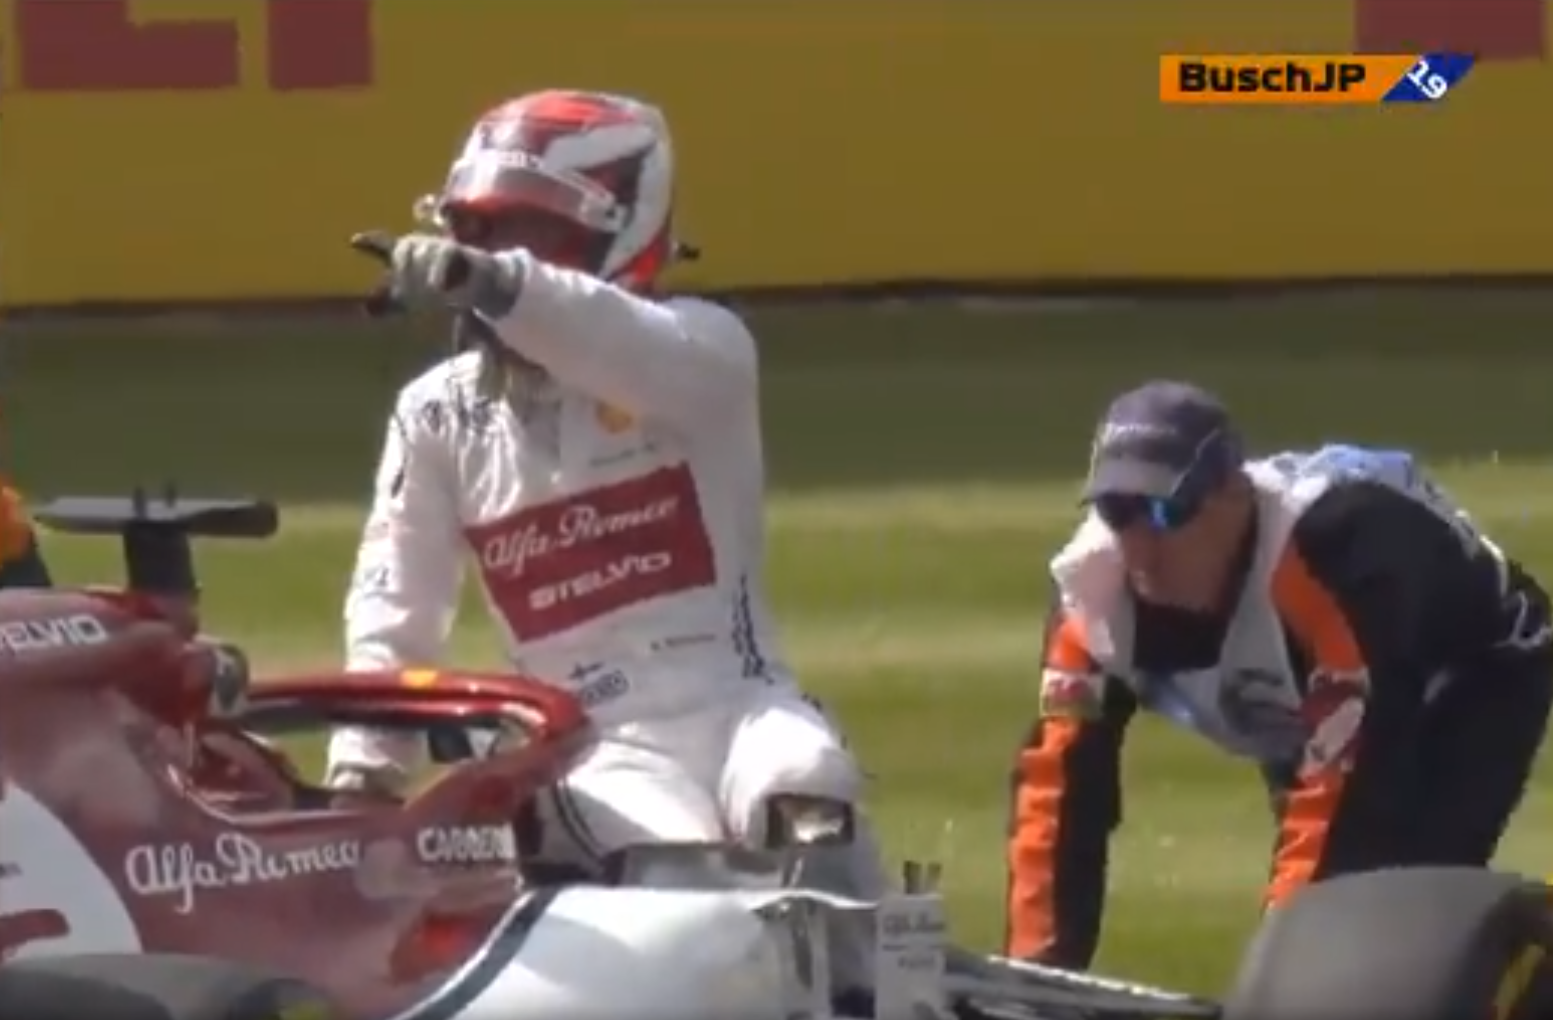 Kimi Raikkonen Sits On His Alfa Romeo While Getting Pushed by Marshals